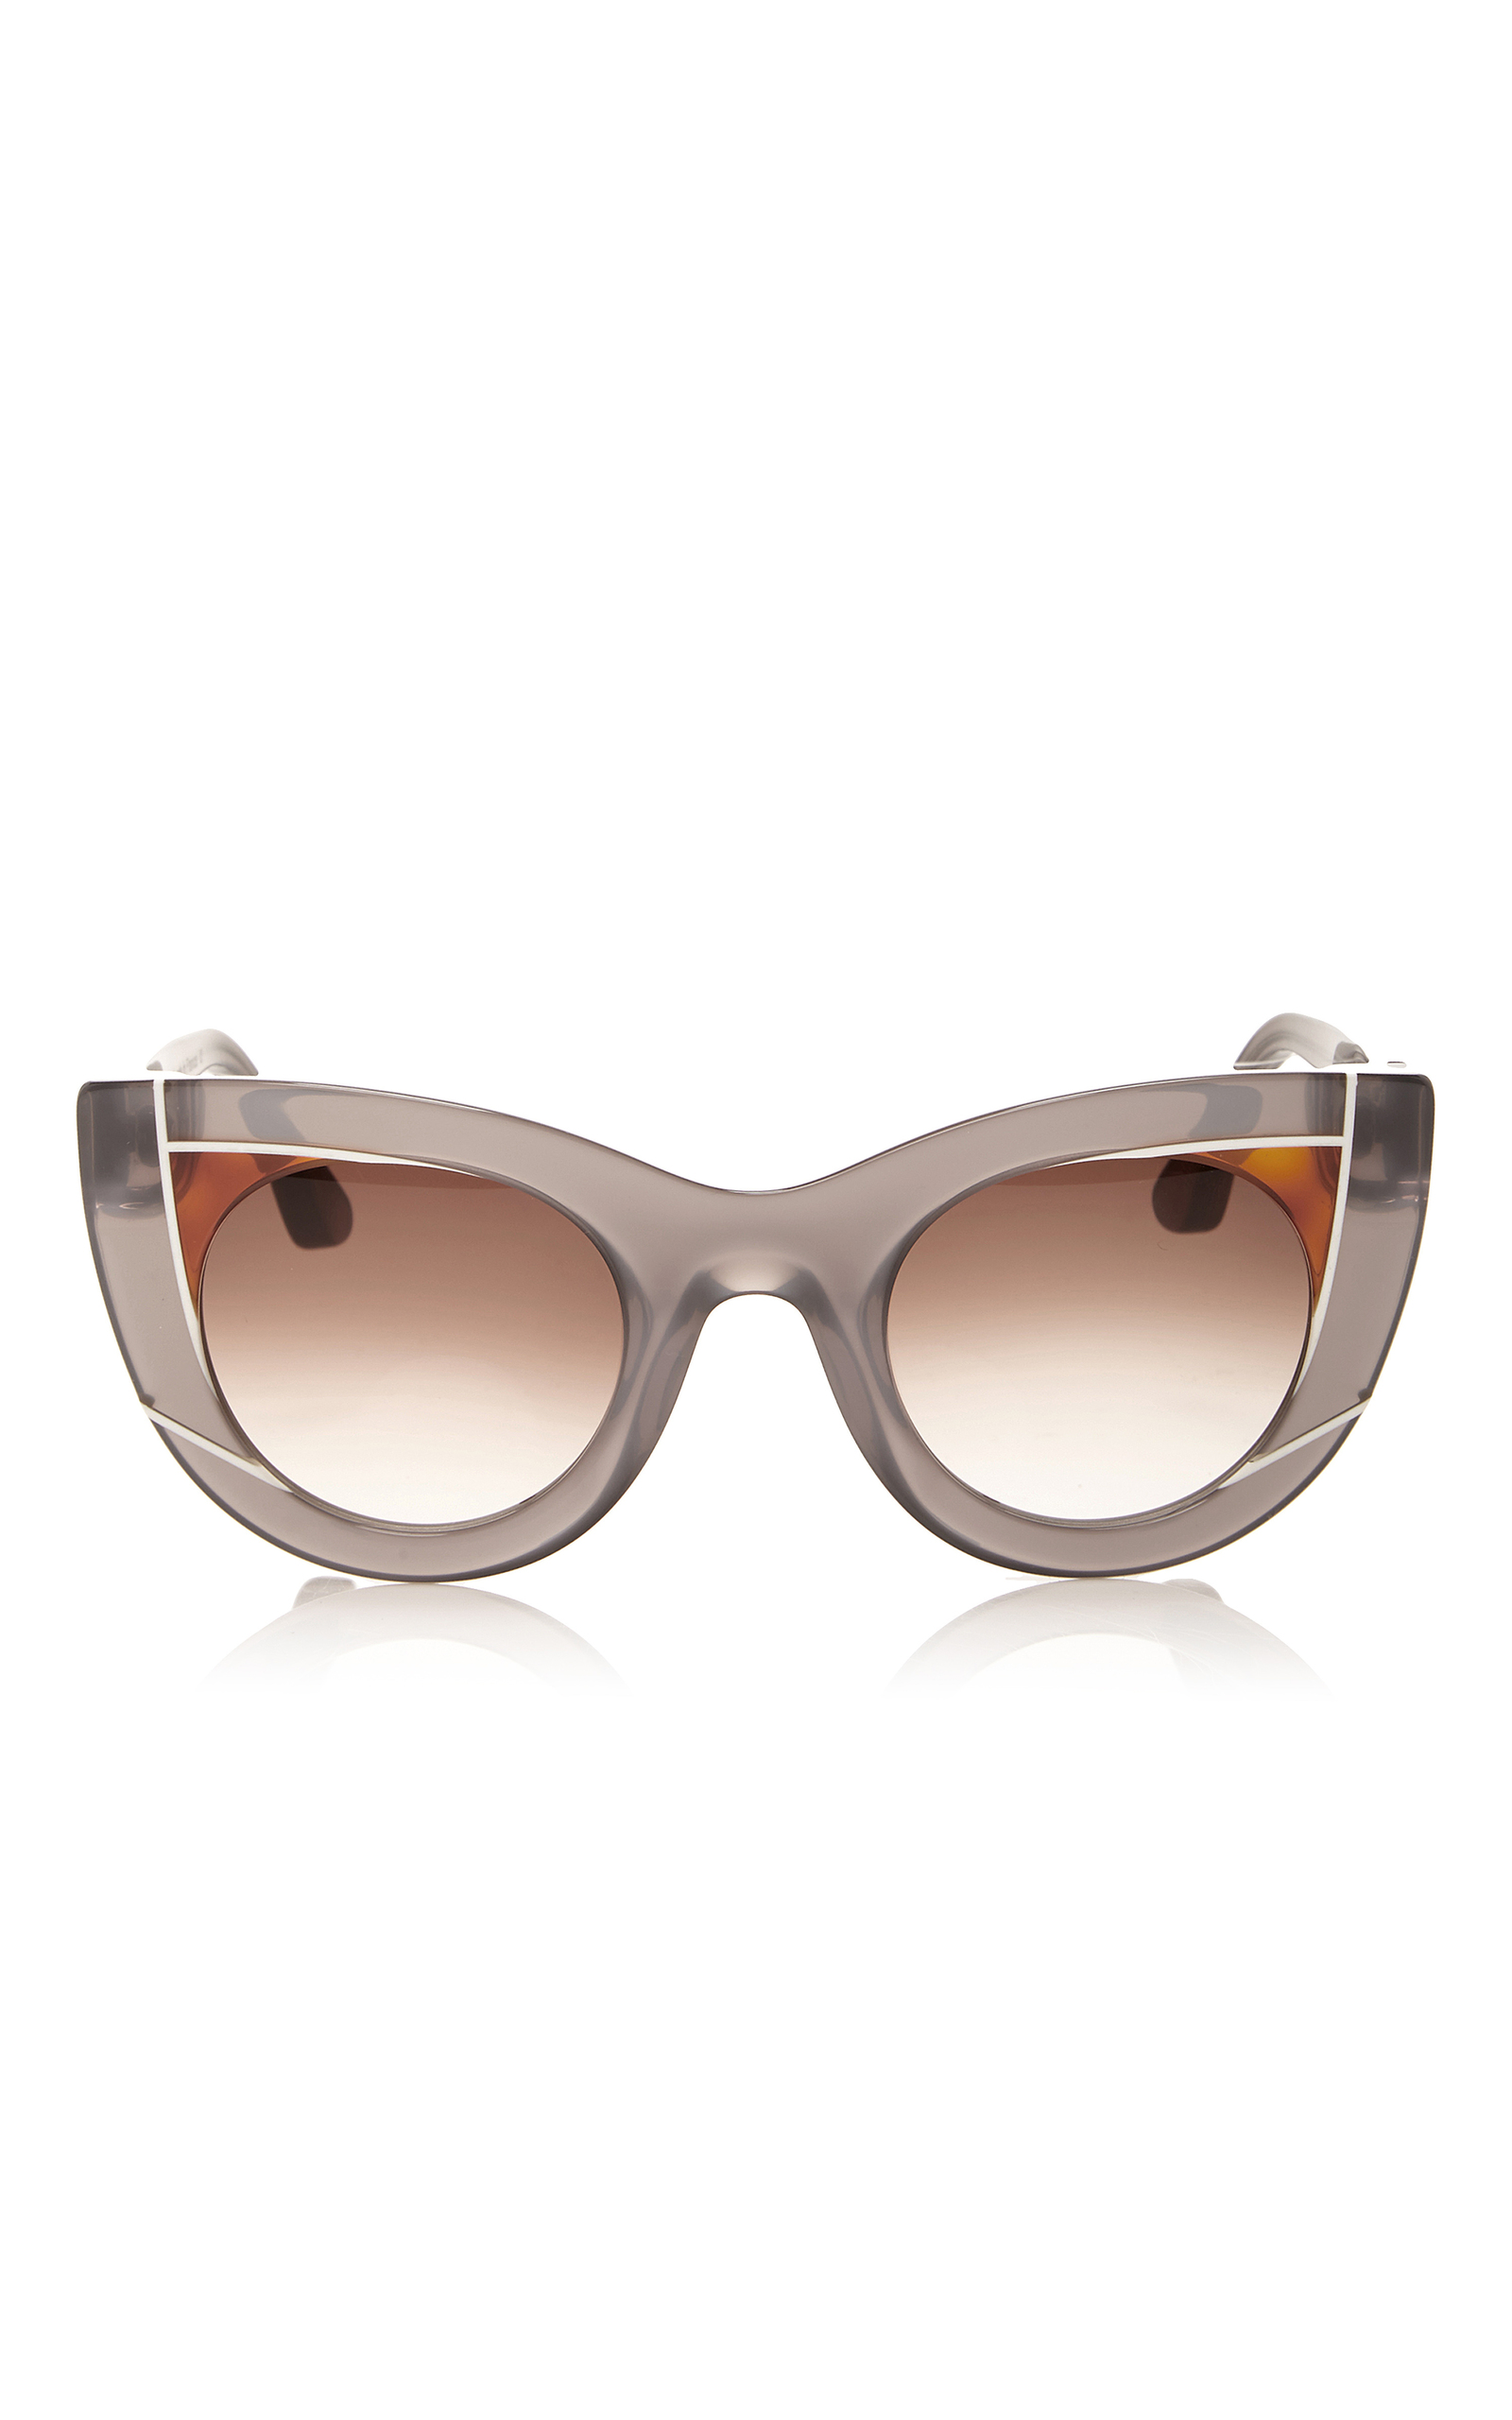 10f66080c1 Thierry Lasry Sexxxy Sunglasses In Grey Brown Gradient